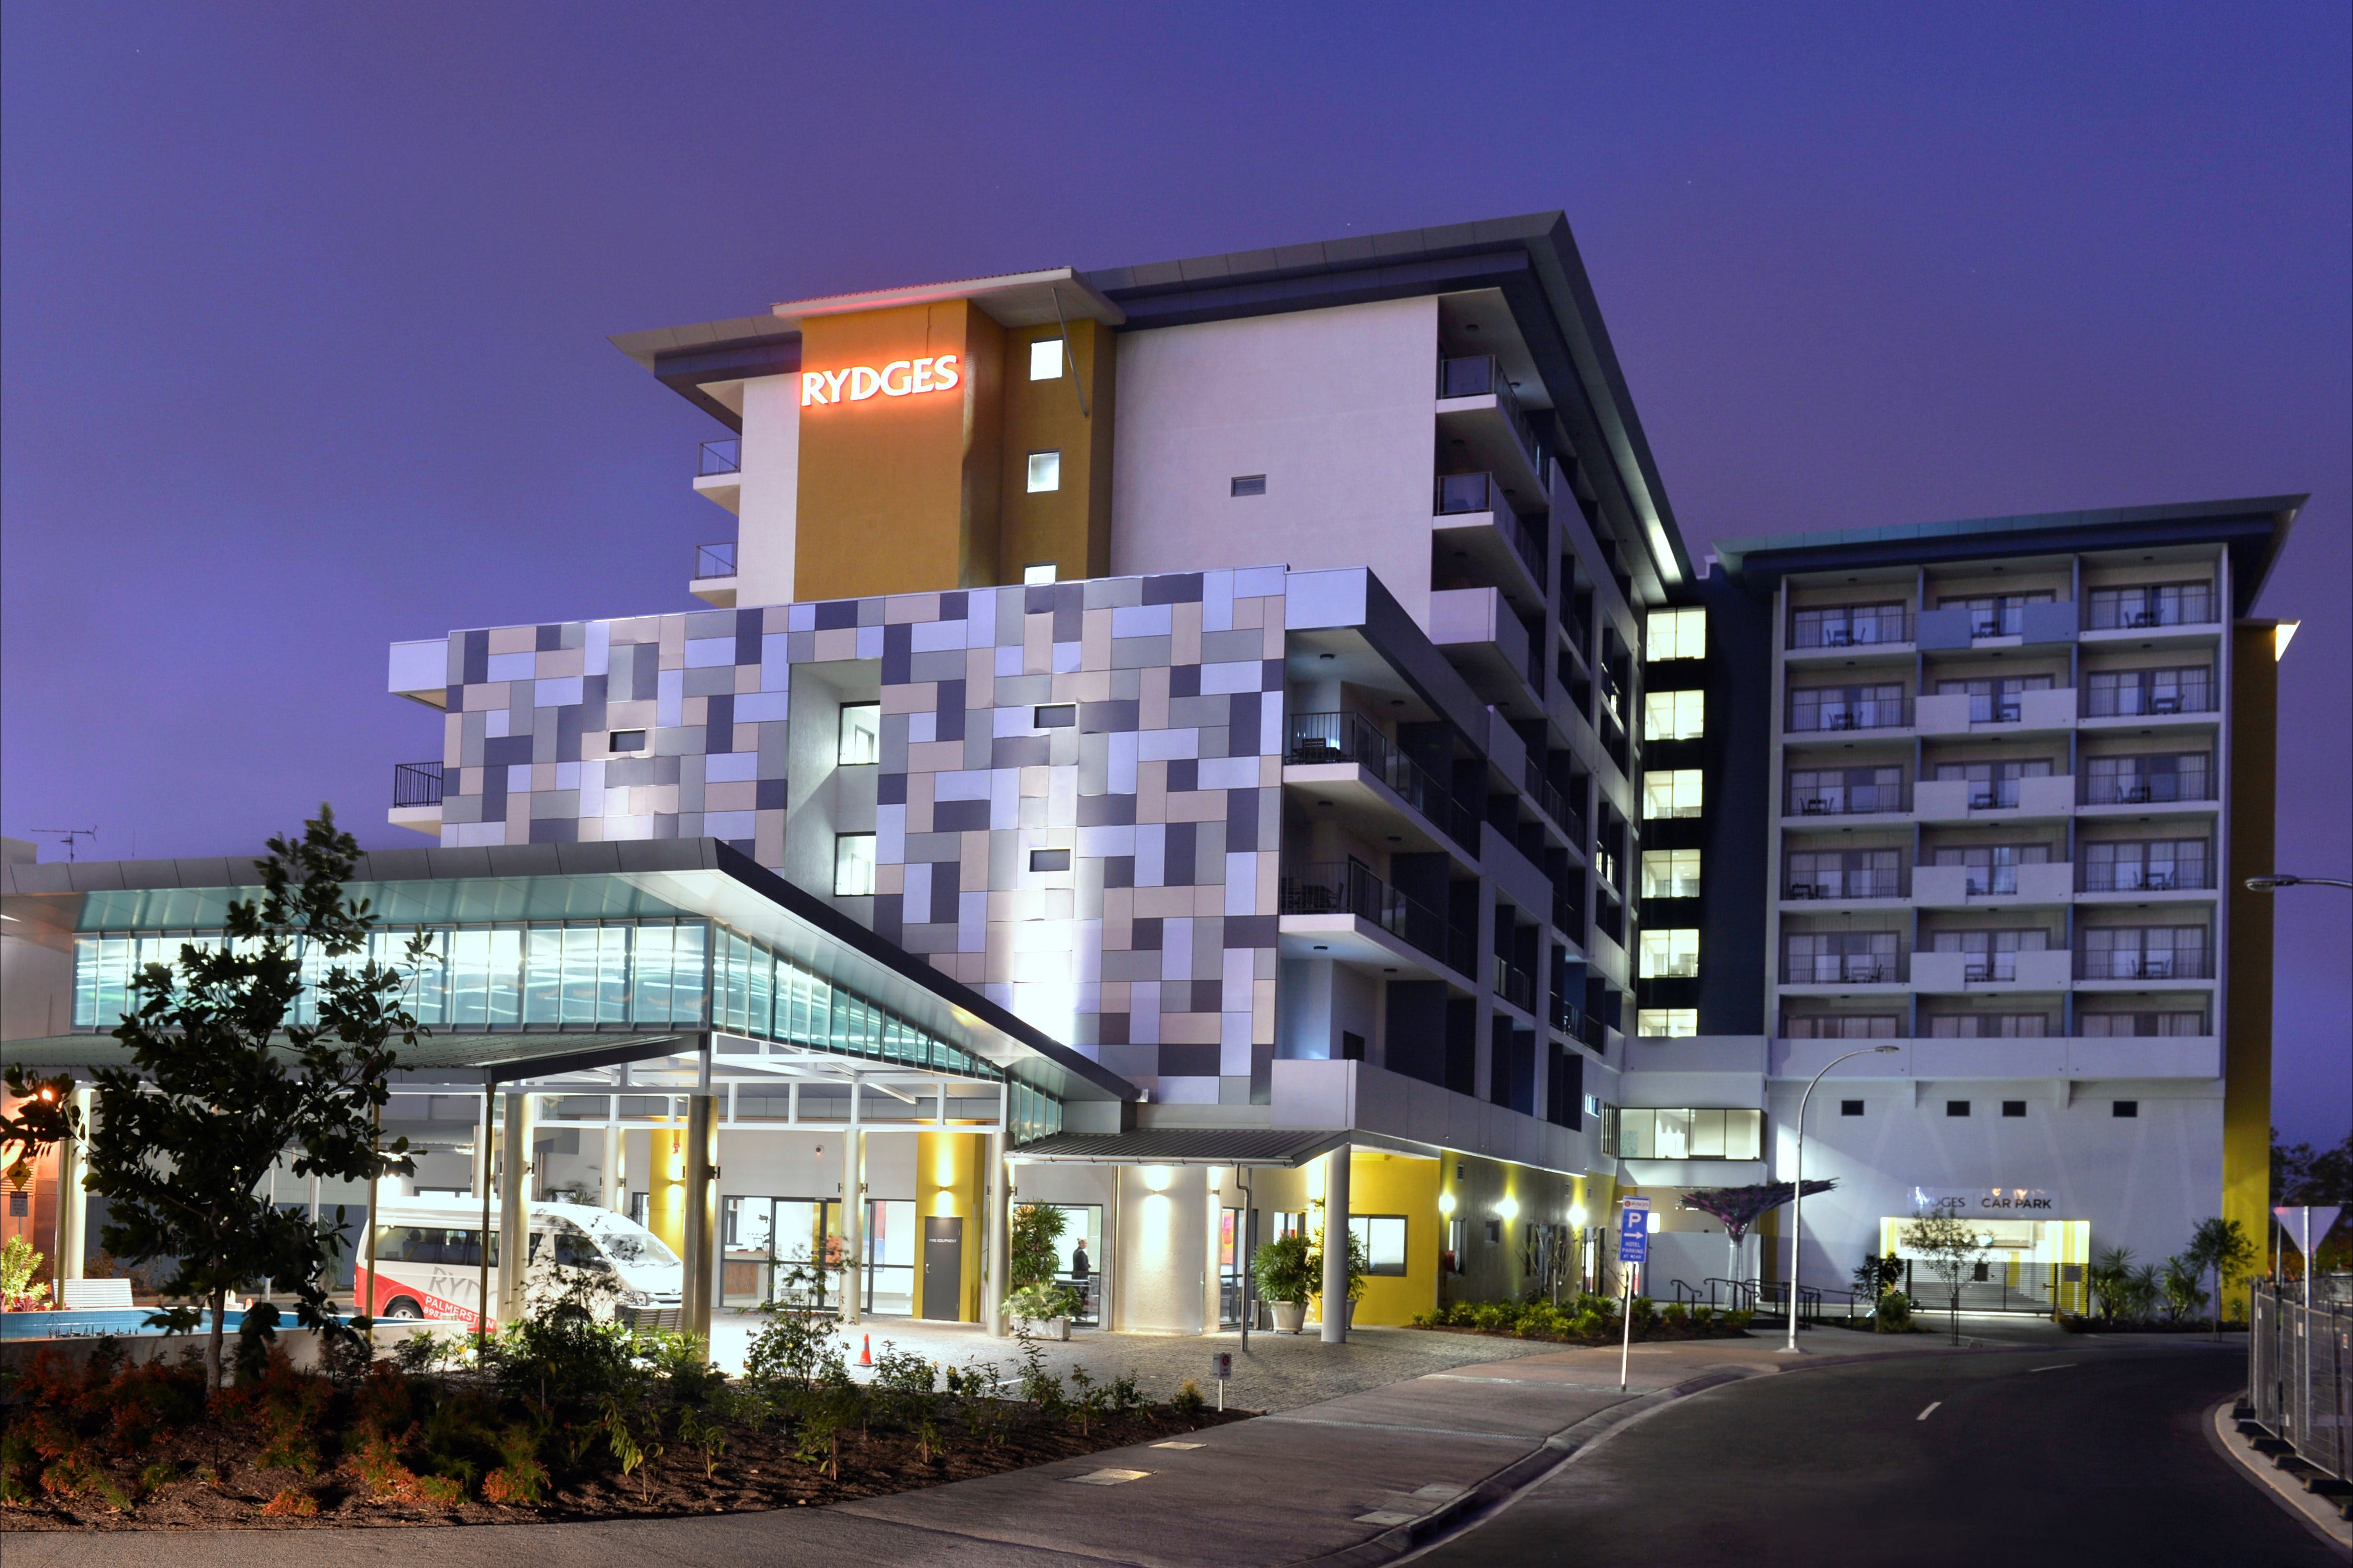 Rydges Palmerston - Accommodation in Brisbane